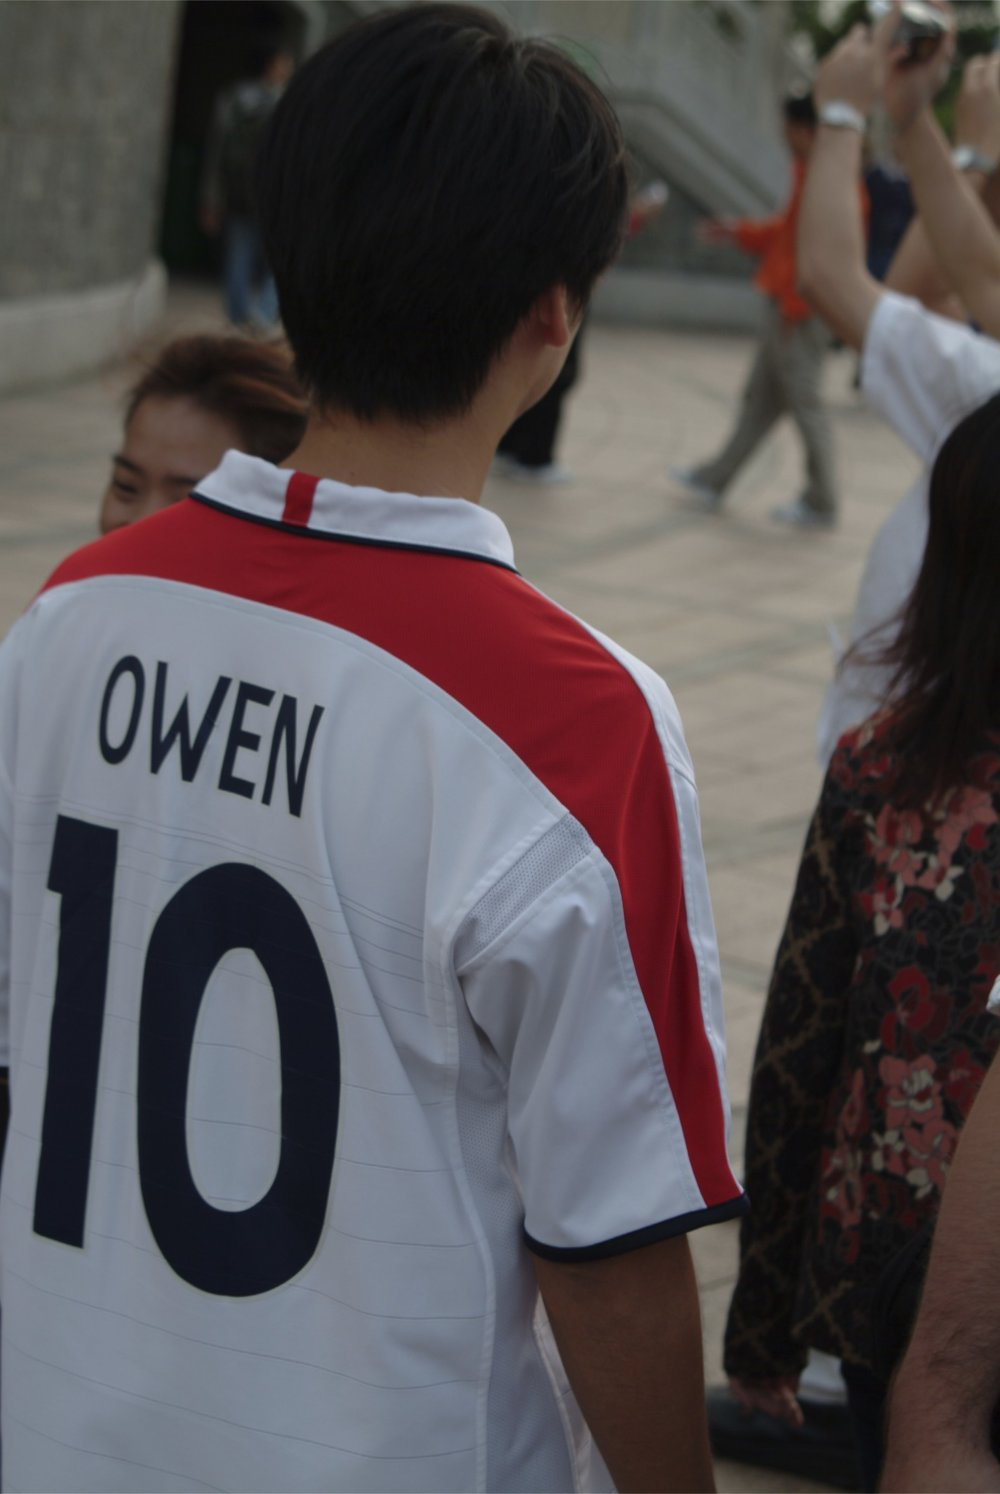 A Chinese Owen?